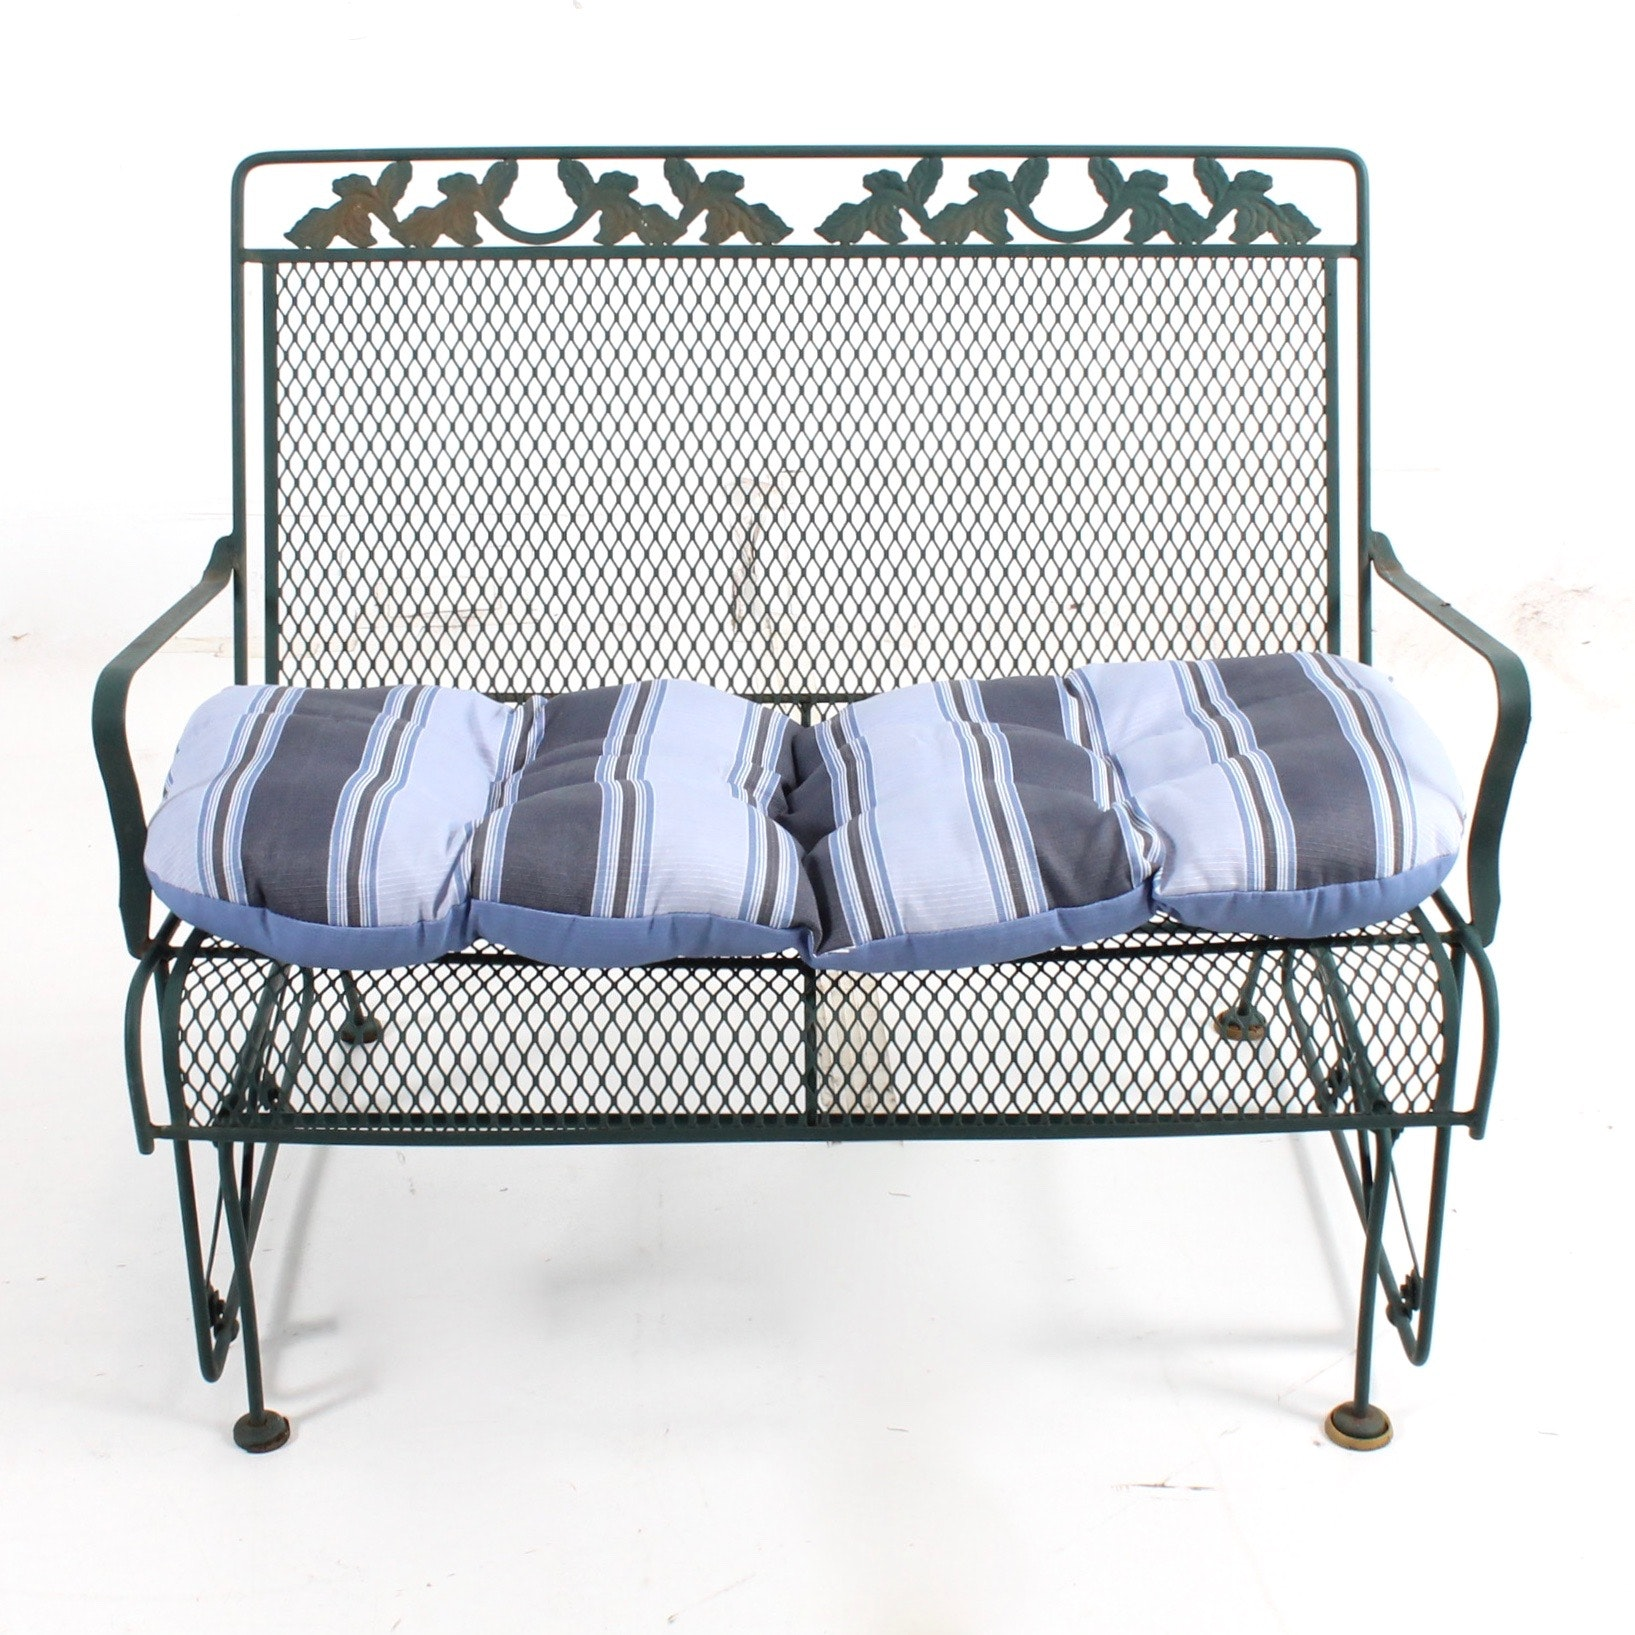 Wrought Iron Patio Glider Settee